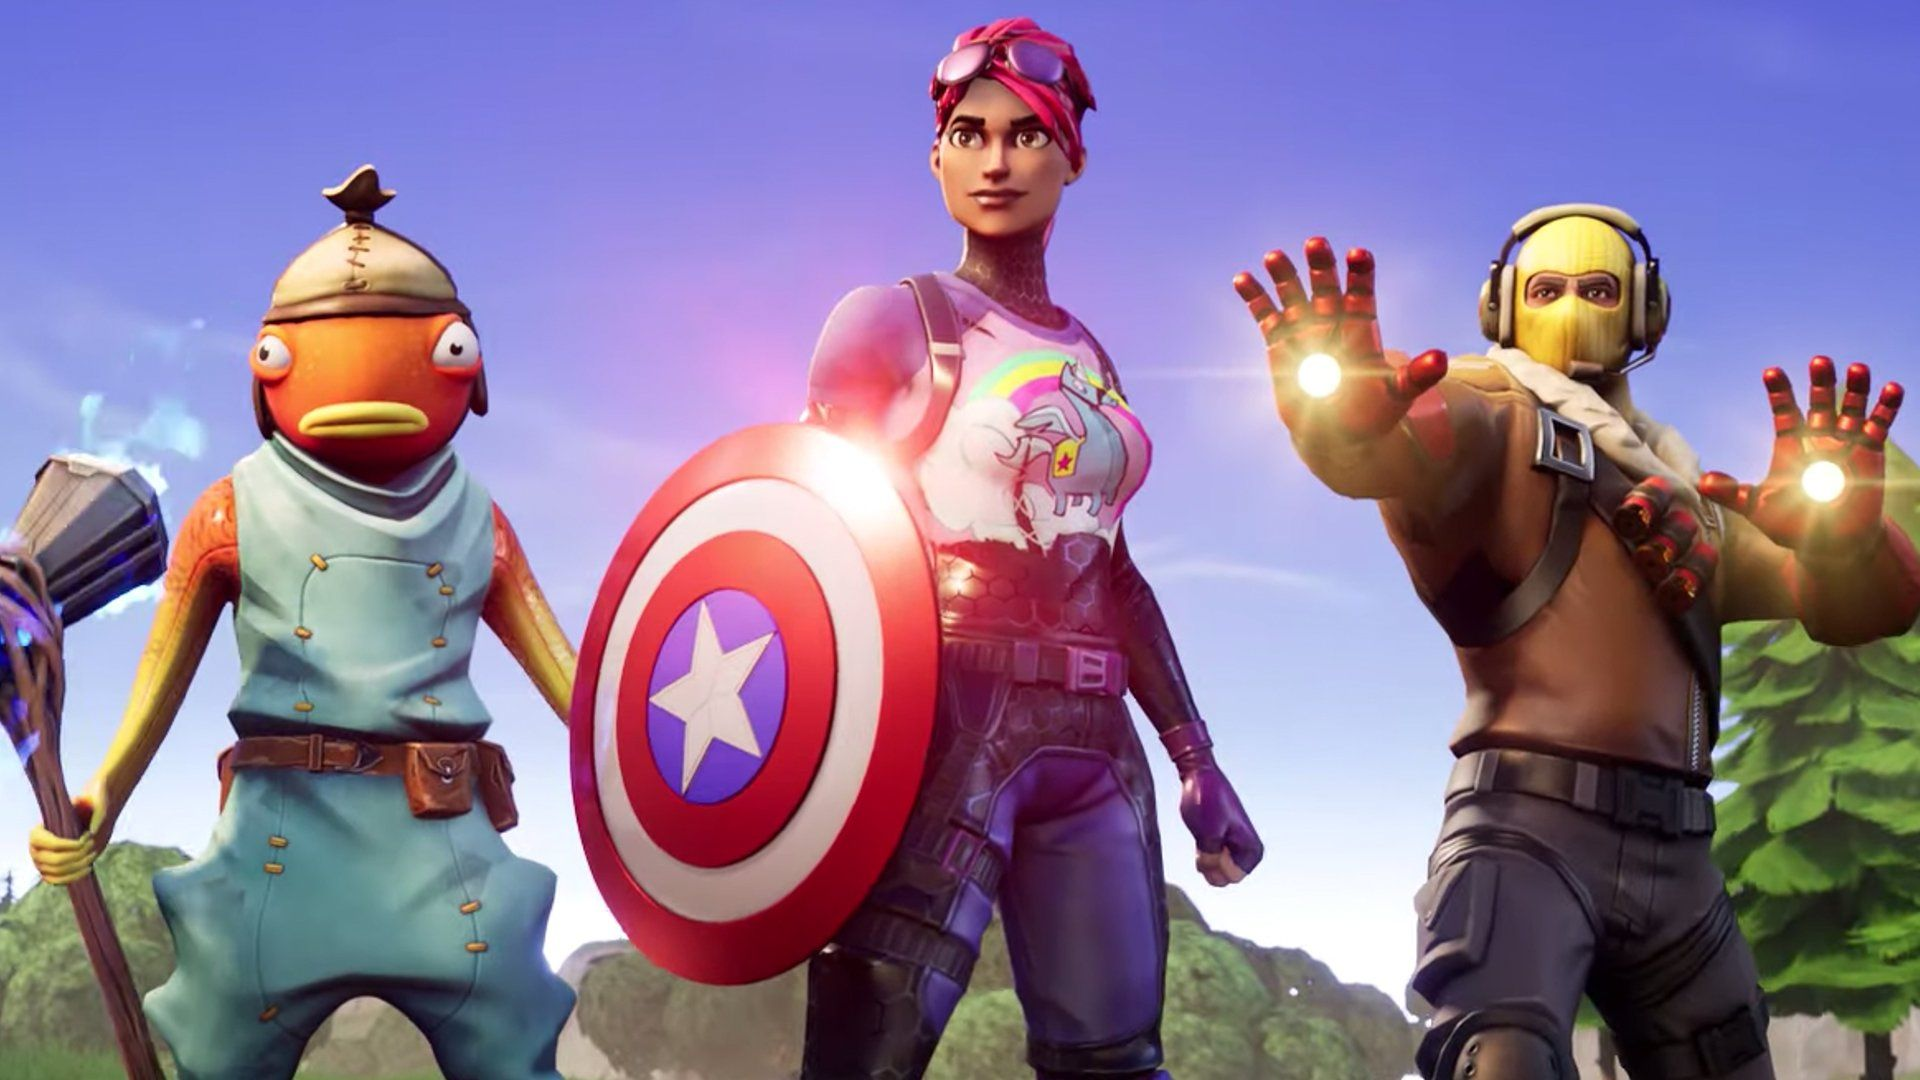 Captain America's shield has appeared in Fortnite before, during the Avengers Endgame crossover last year.